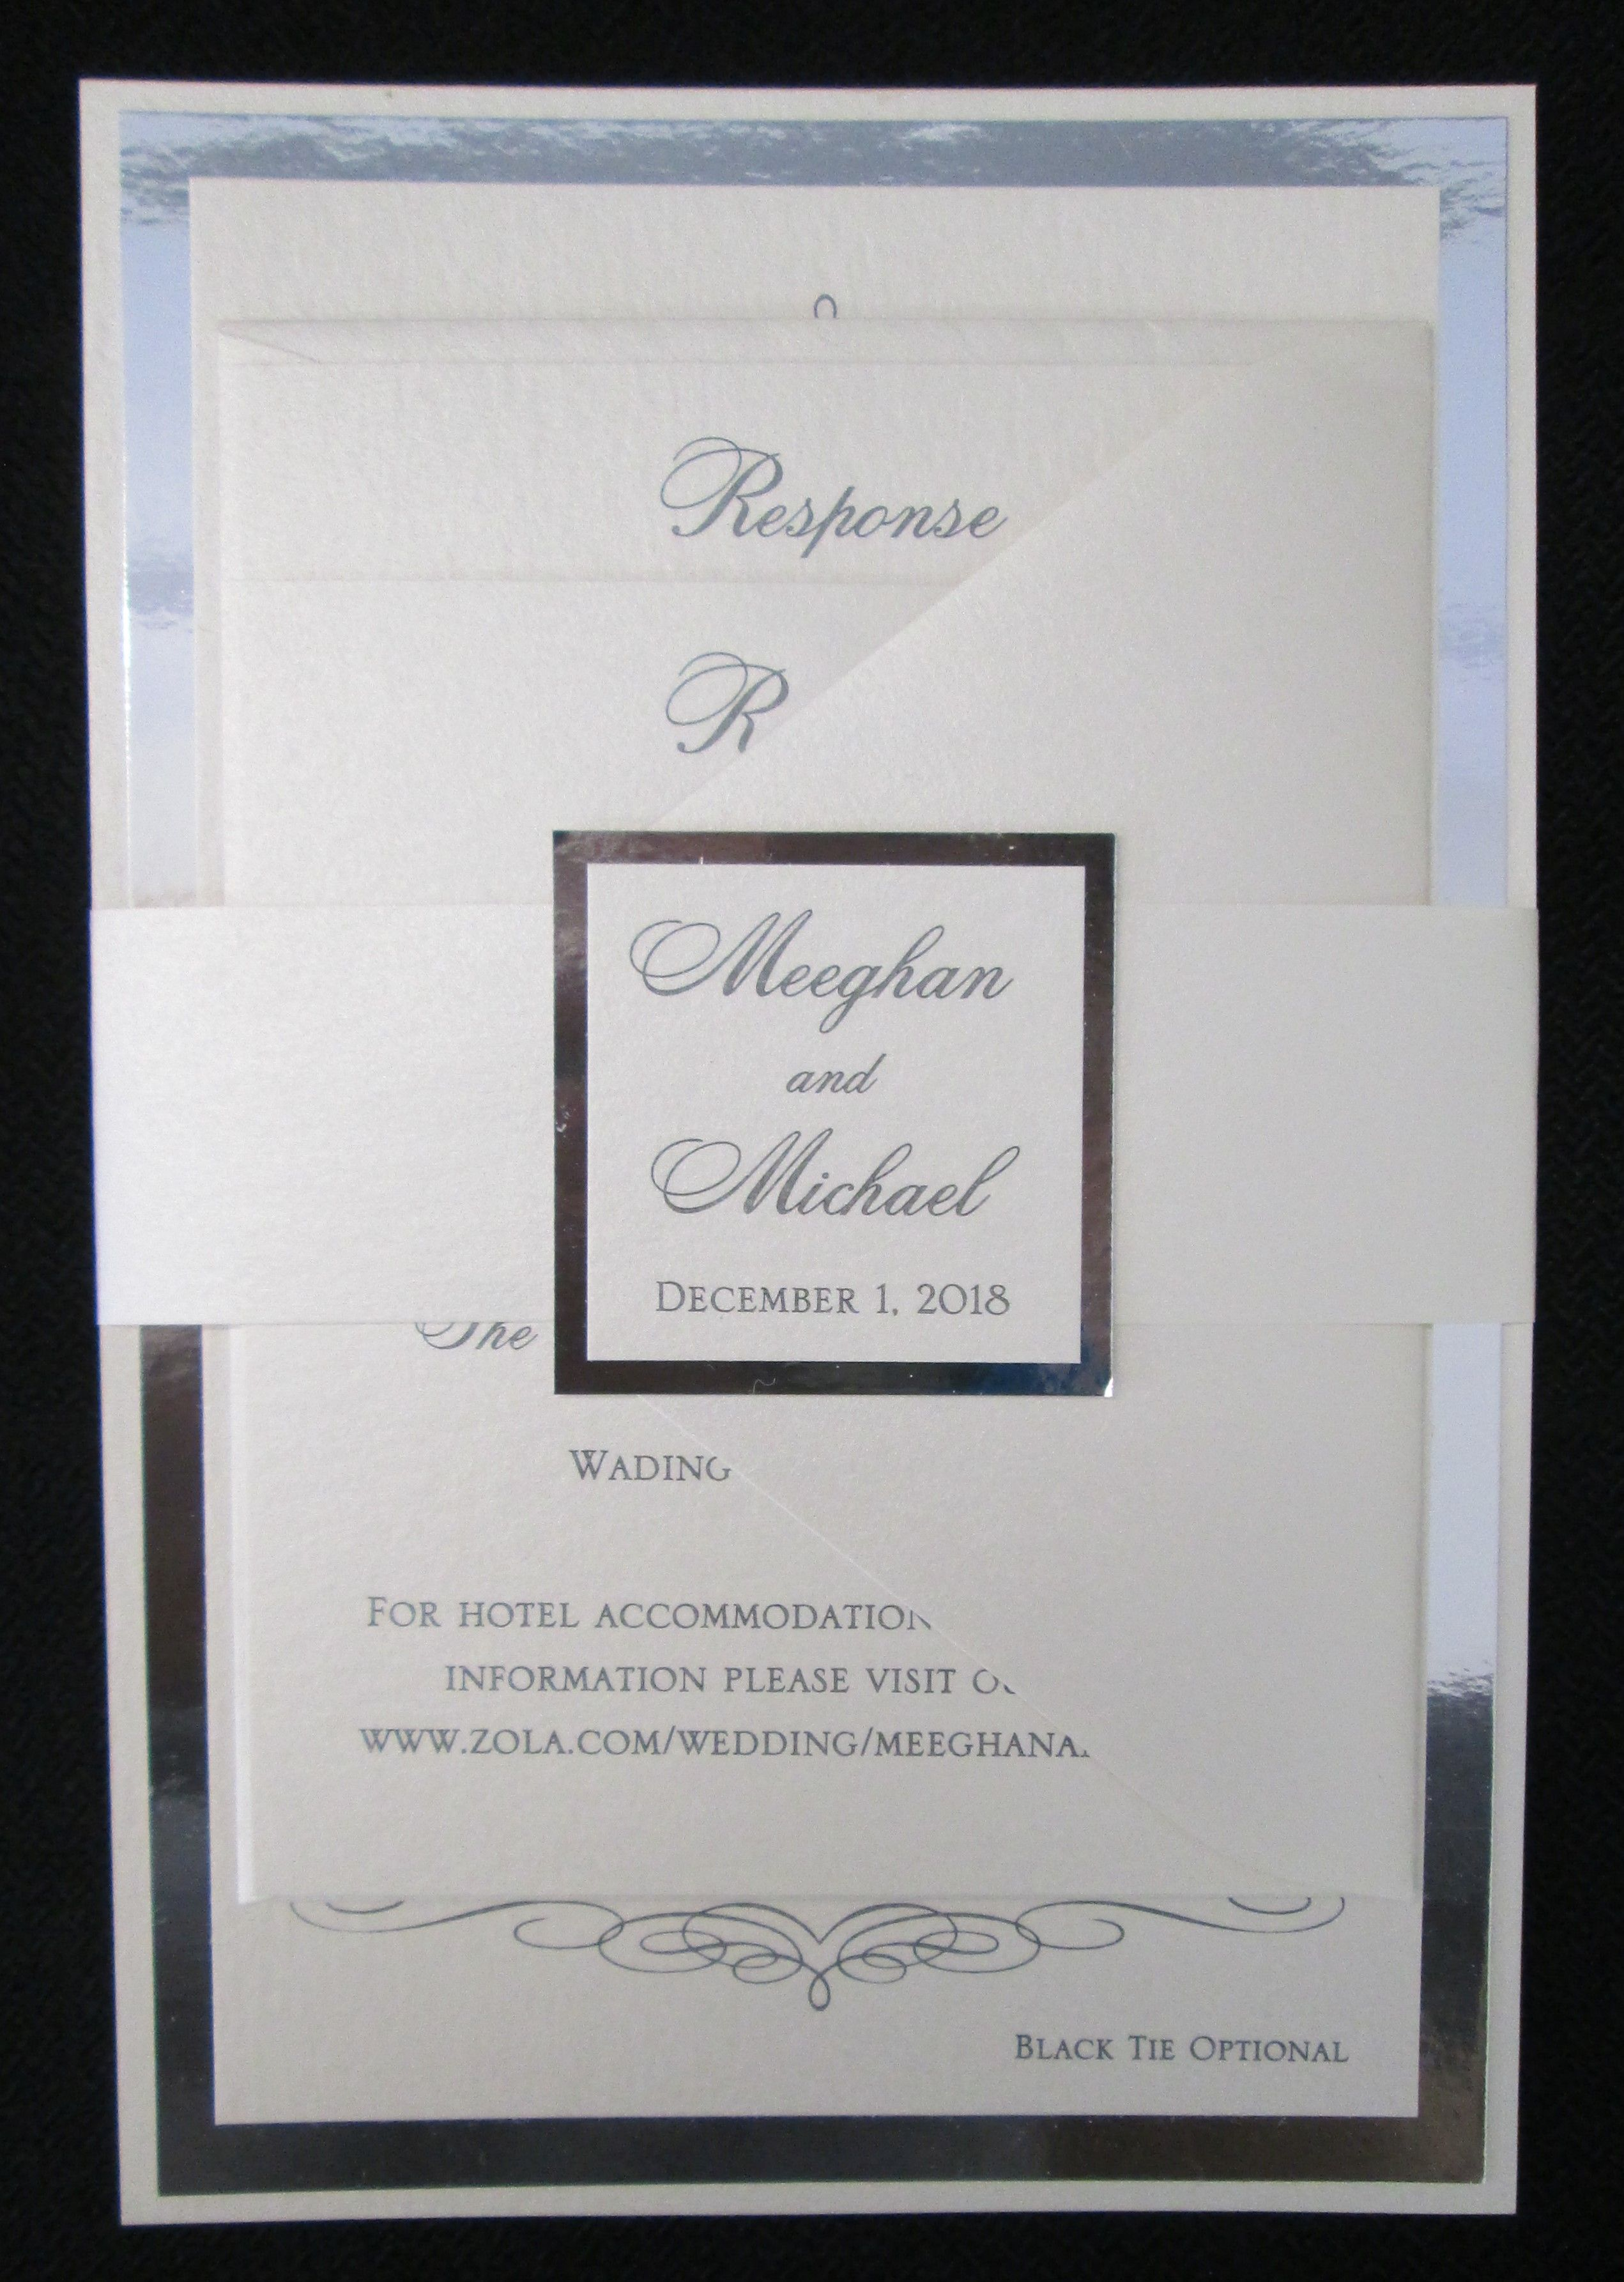 Multi Layer Wedding Invitation With Paper Band And Tag Making Invitations Day: Pi Day Wedding Cards At Websimilar.org